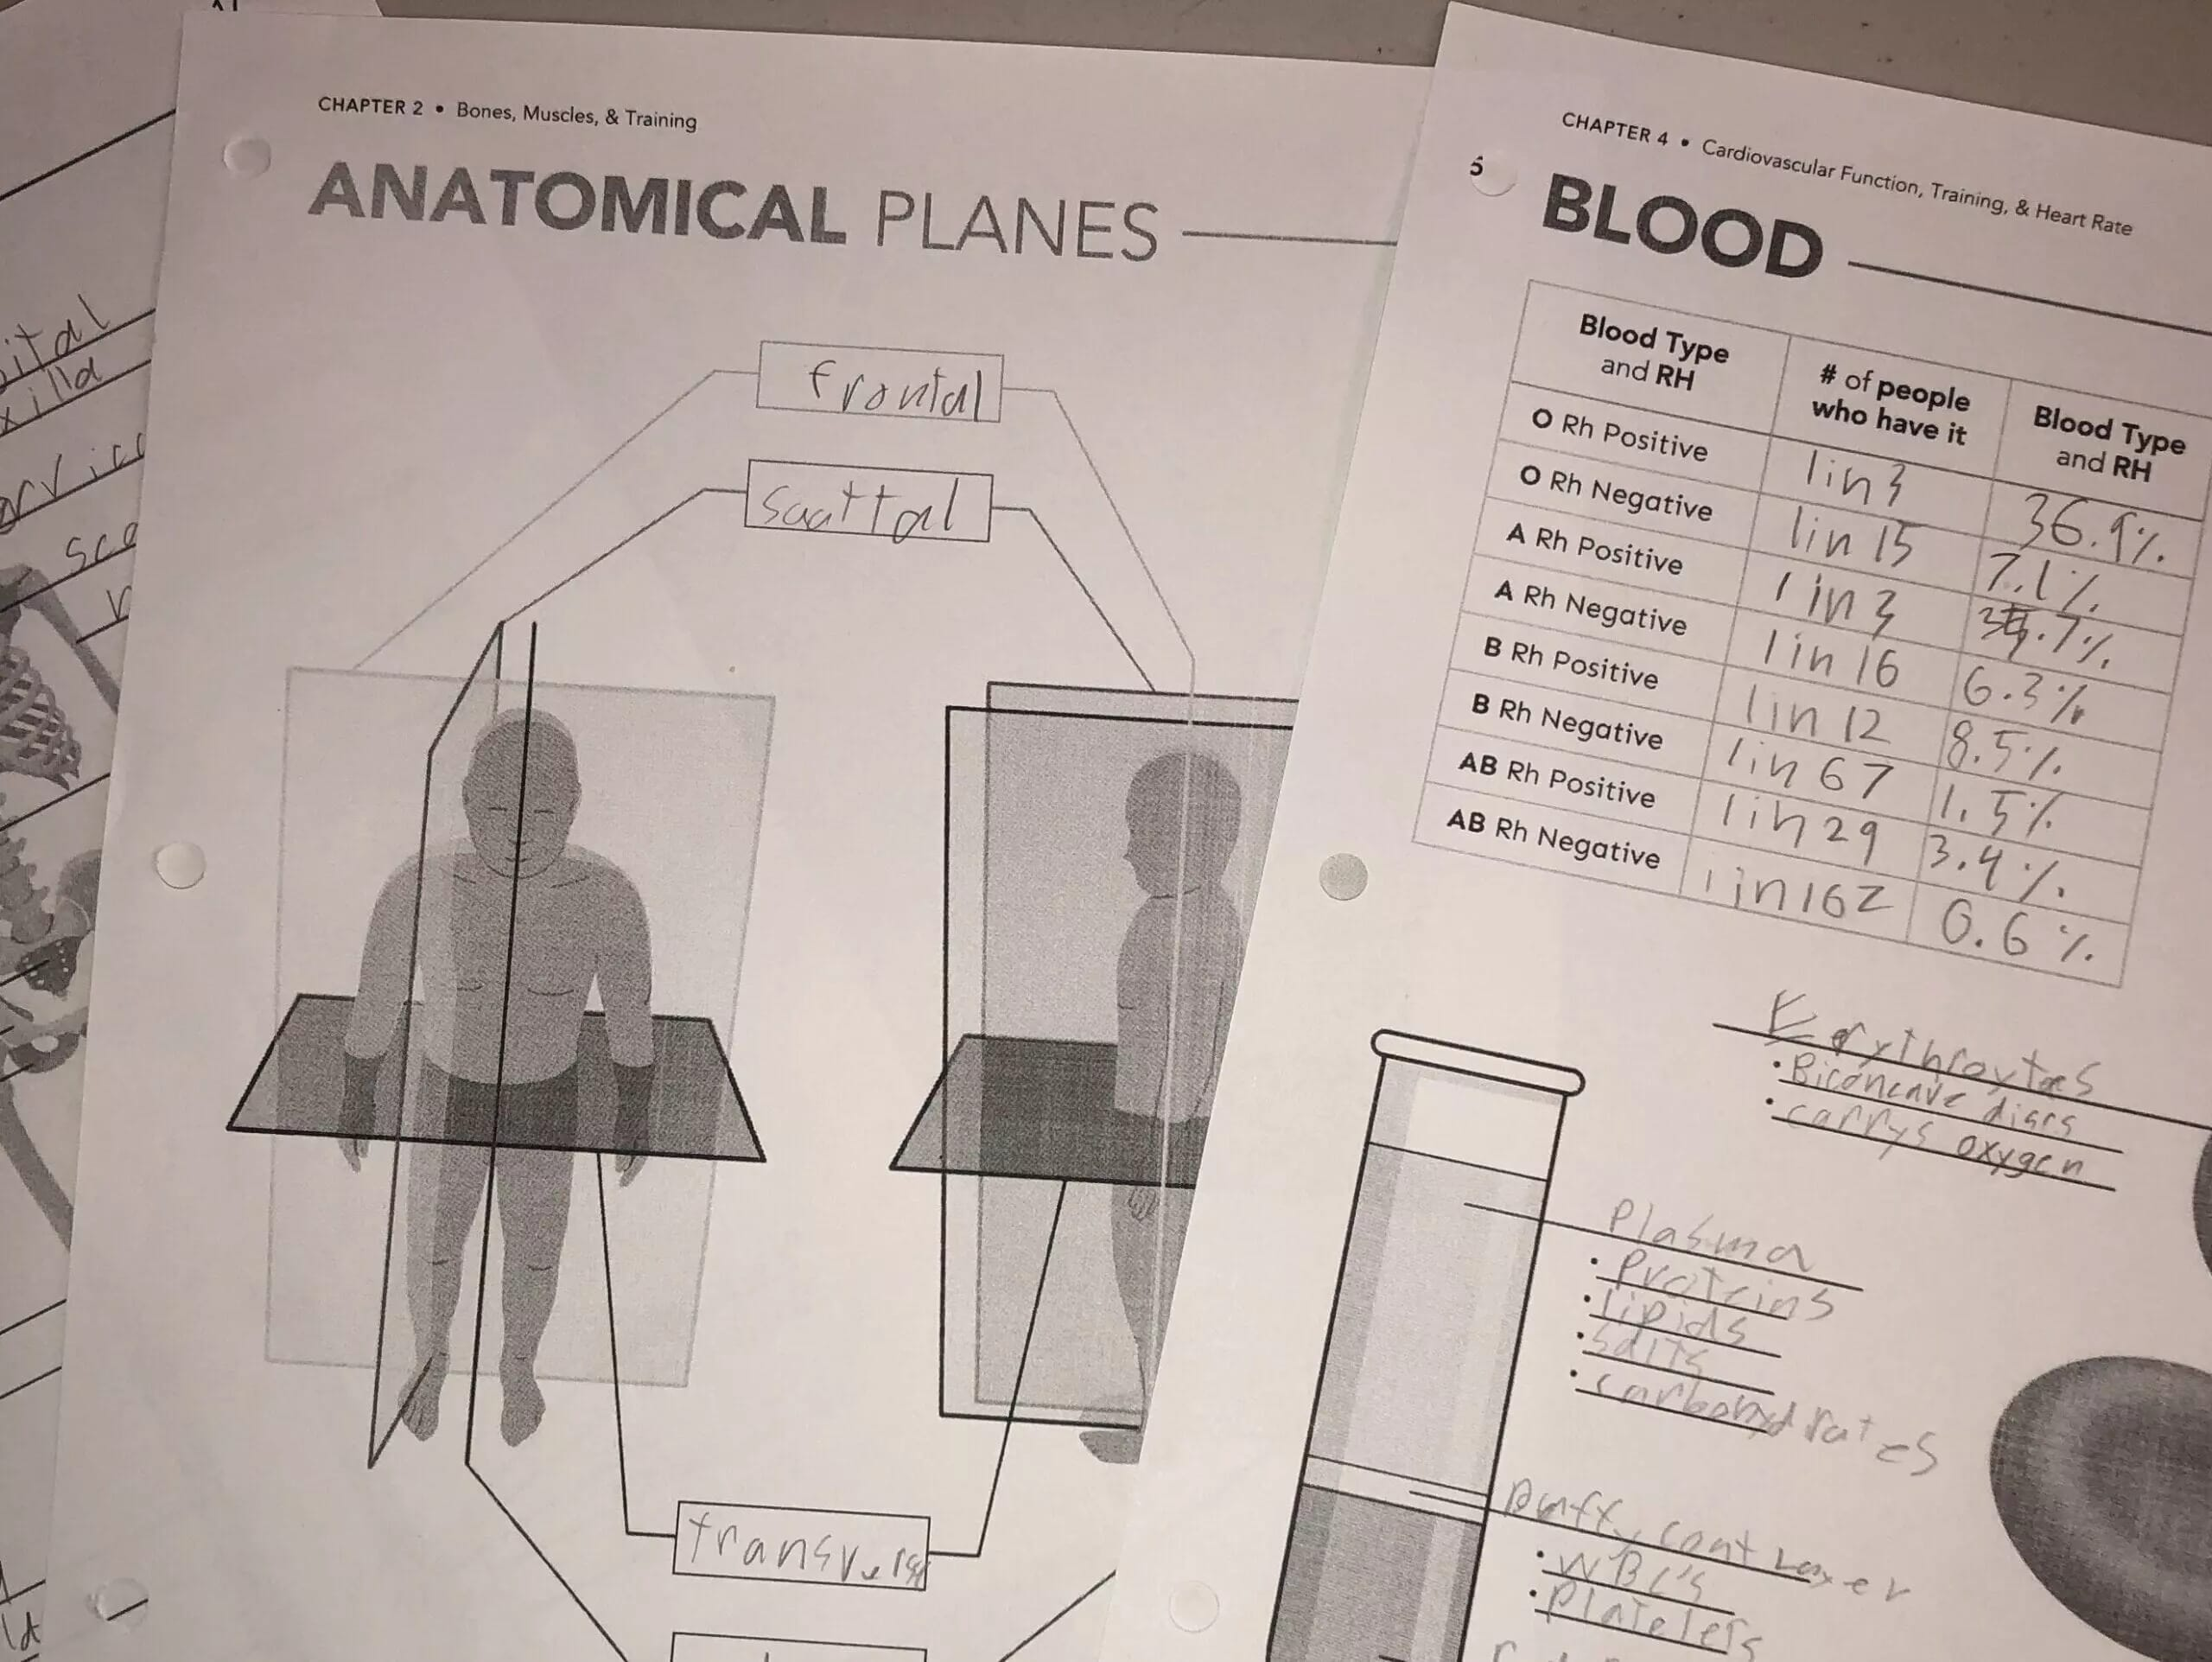 Worksheets are included in the Exercise and Sports Physiology class by College Prep science in order to reinforce learning.